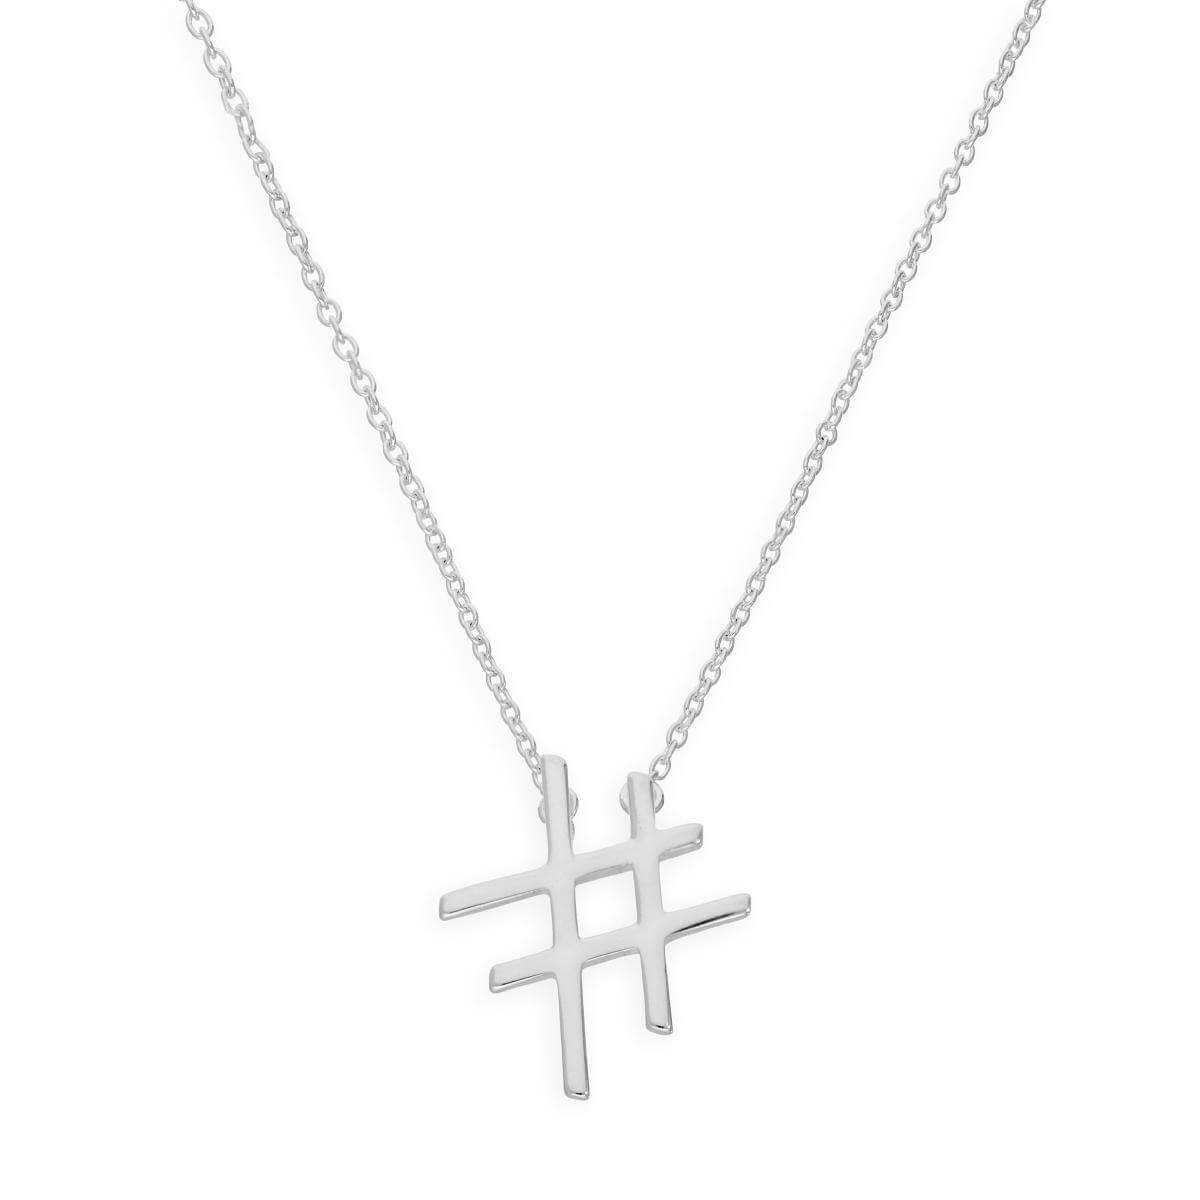 Sterling Silver Hashtag 18 Inch Necklace